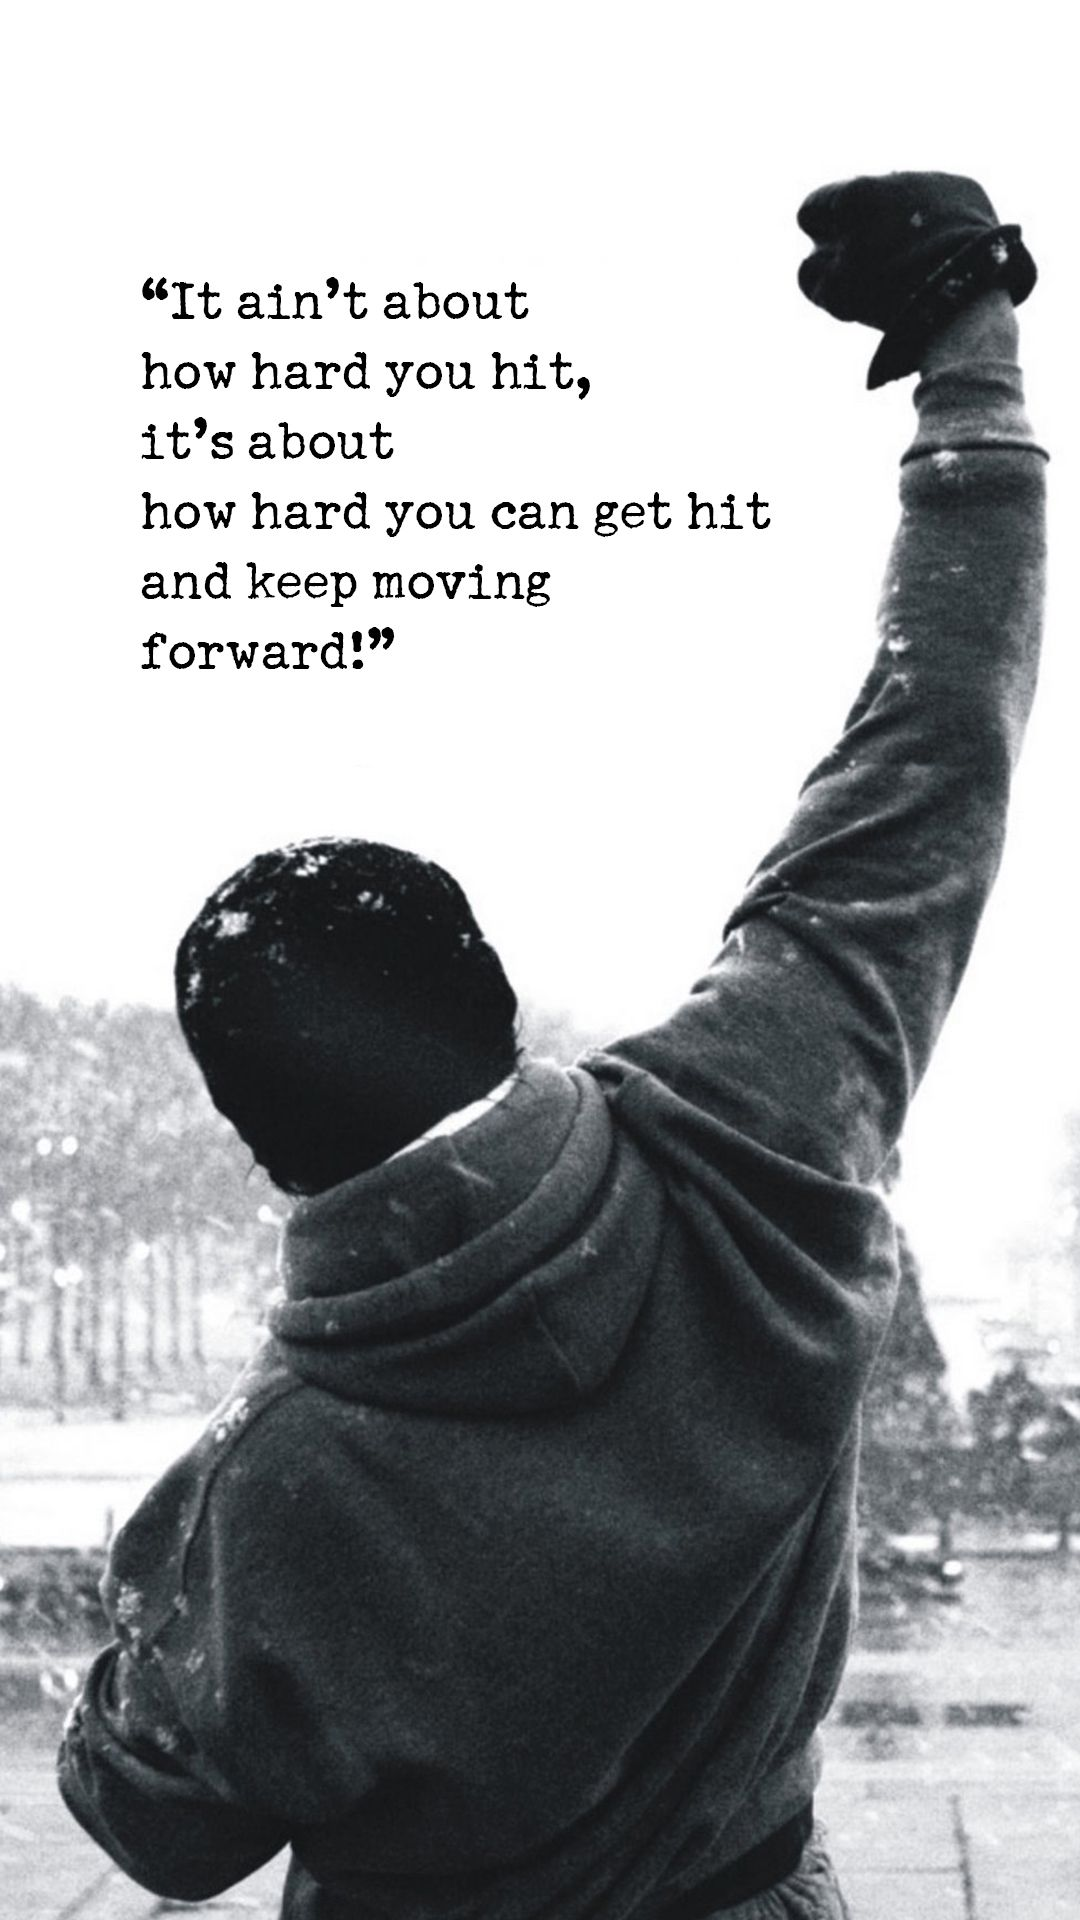 Rocky Quotes Wallpaper : rocky, quotes, wallpaper, Typography, IPhone, Wallpapers, Download, Rocky, Balboa, Quotes,